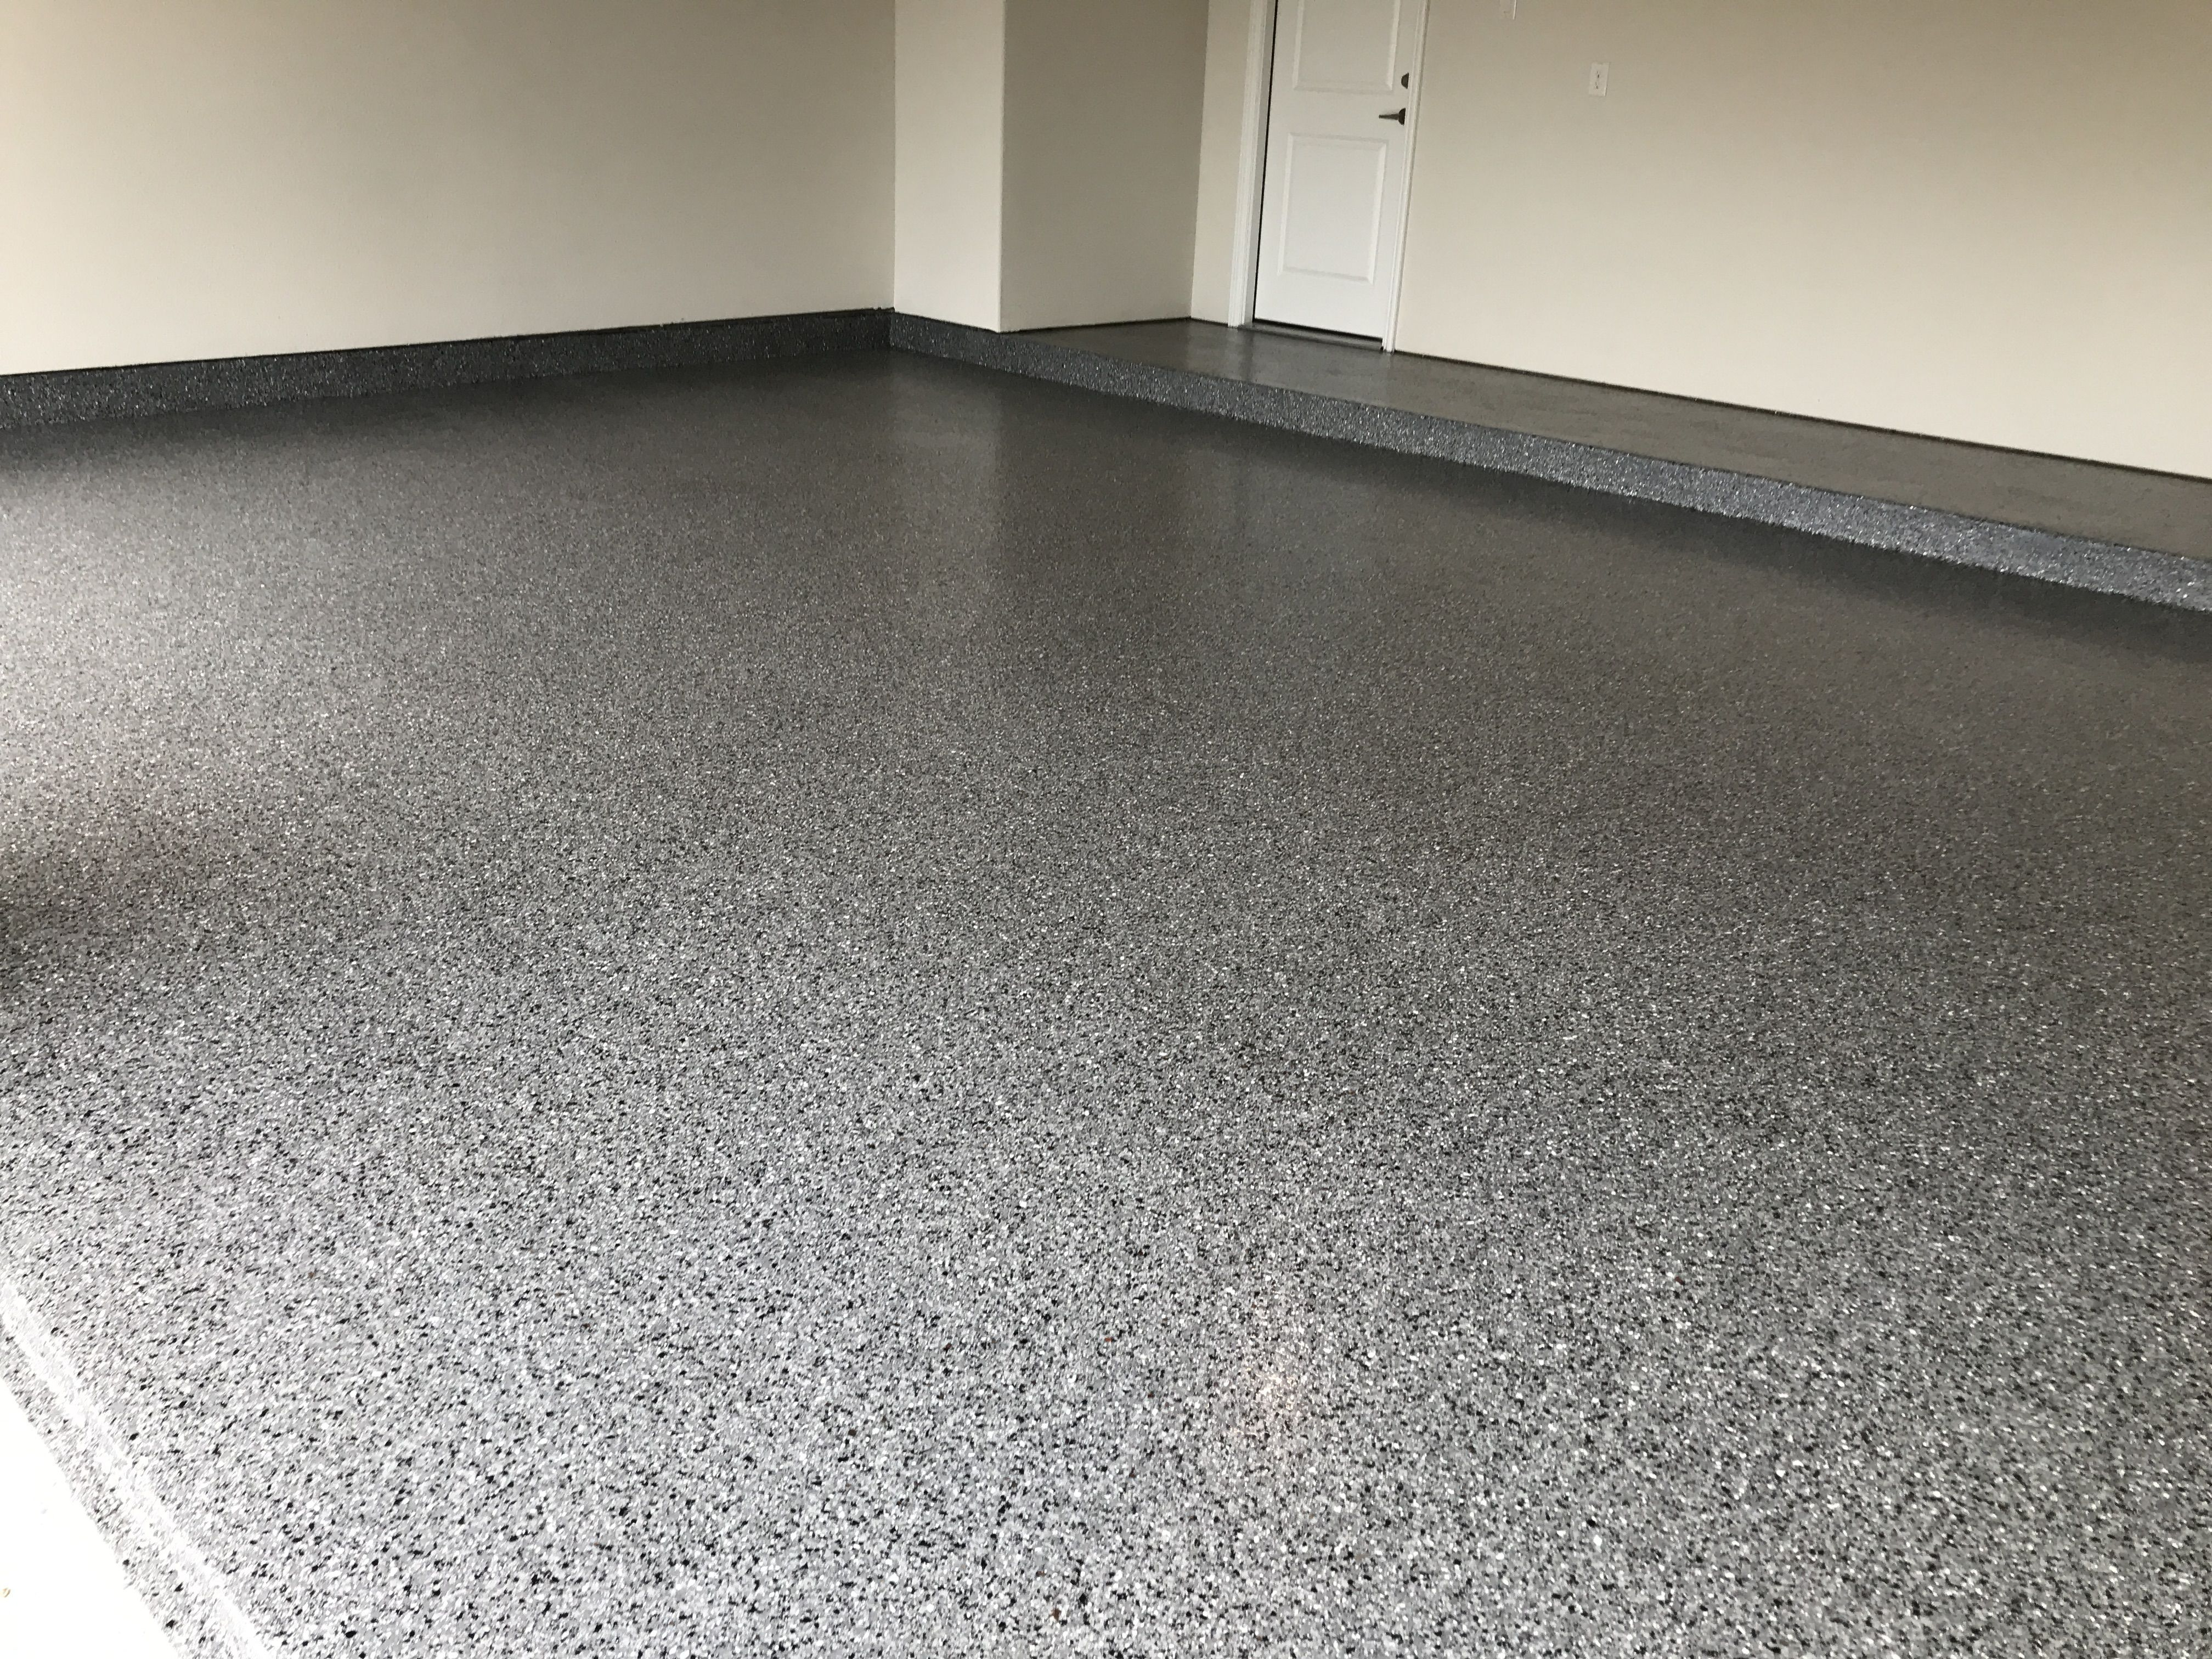 Classic Finish Marble With White Get Your Free Estimate By Email Today At Https Garage Epoxy Garage Floor Coating Garage Floor Coatings Garage Floor Epoxy